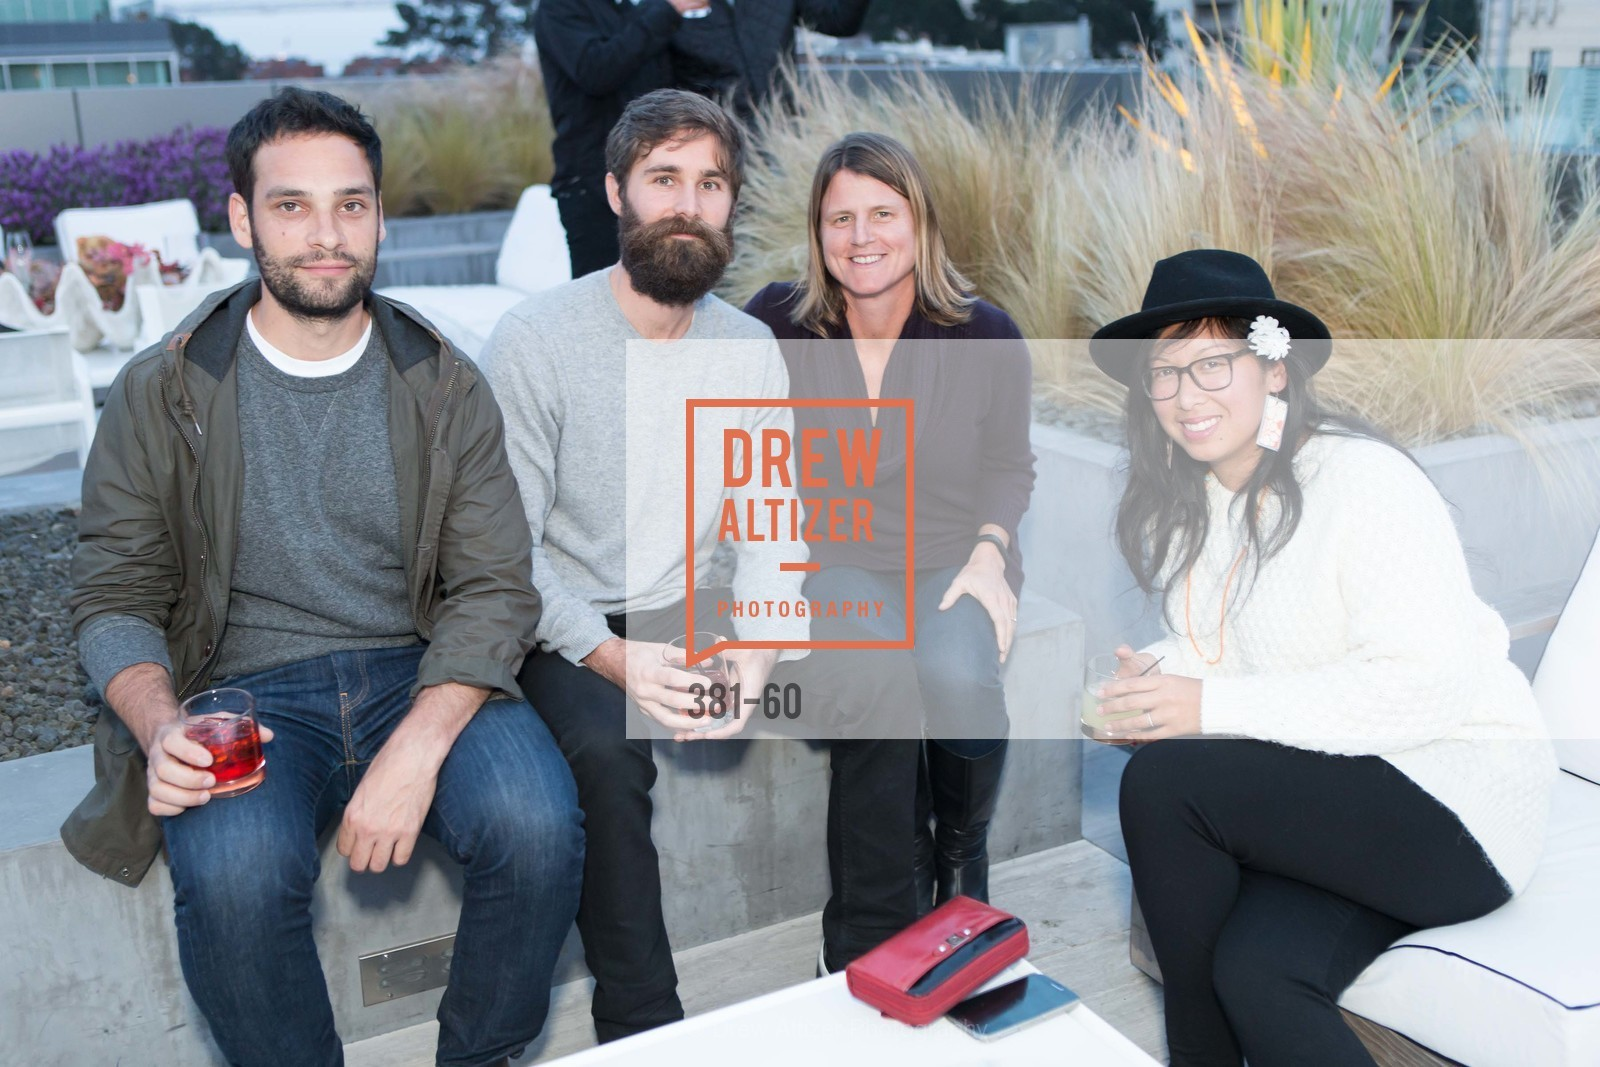 Matt Verdigary, Alex Gibbons, Skye Dilano, Samala, MR PORTER Celebrate The San Francisco Issue of The Journal, The Battery Rooftop - The Battery SF, April 23rd, 2015,Drew Altizer, Drew Altizer Photography, full-service agency, private events, San Francisco photographer, photographer california